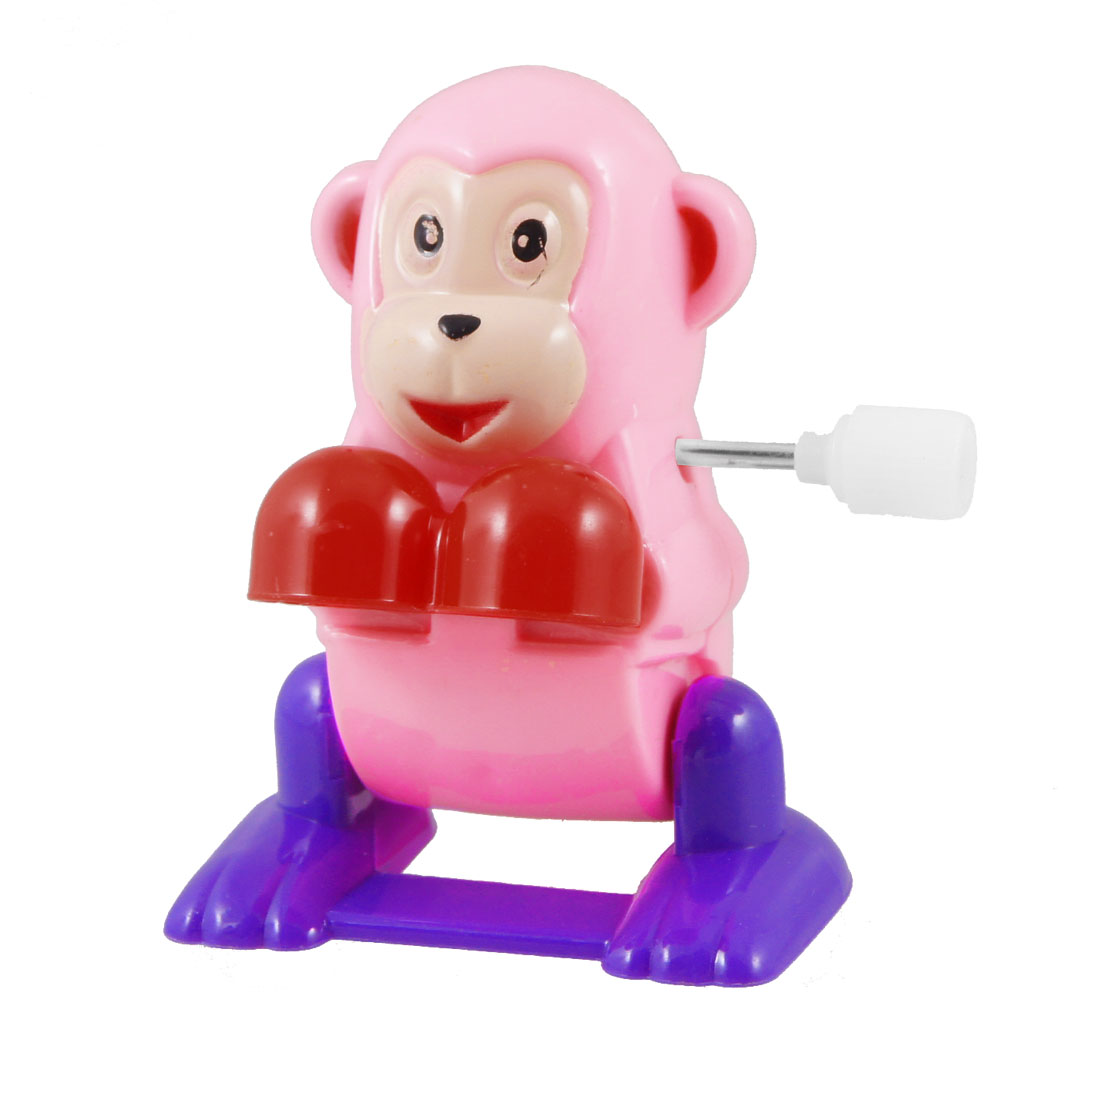 Pink Red Purple Plastic Wind Up Design Clockwork Cartoon Monkey Toy